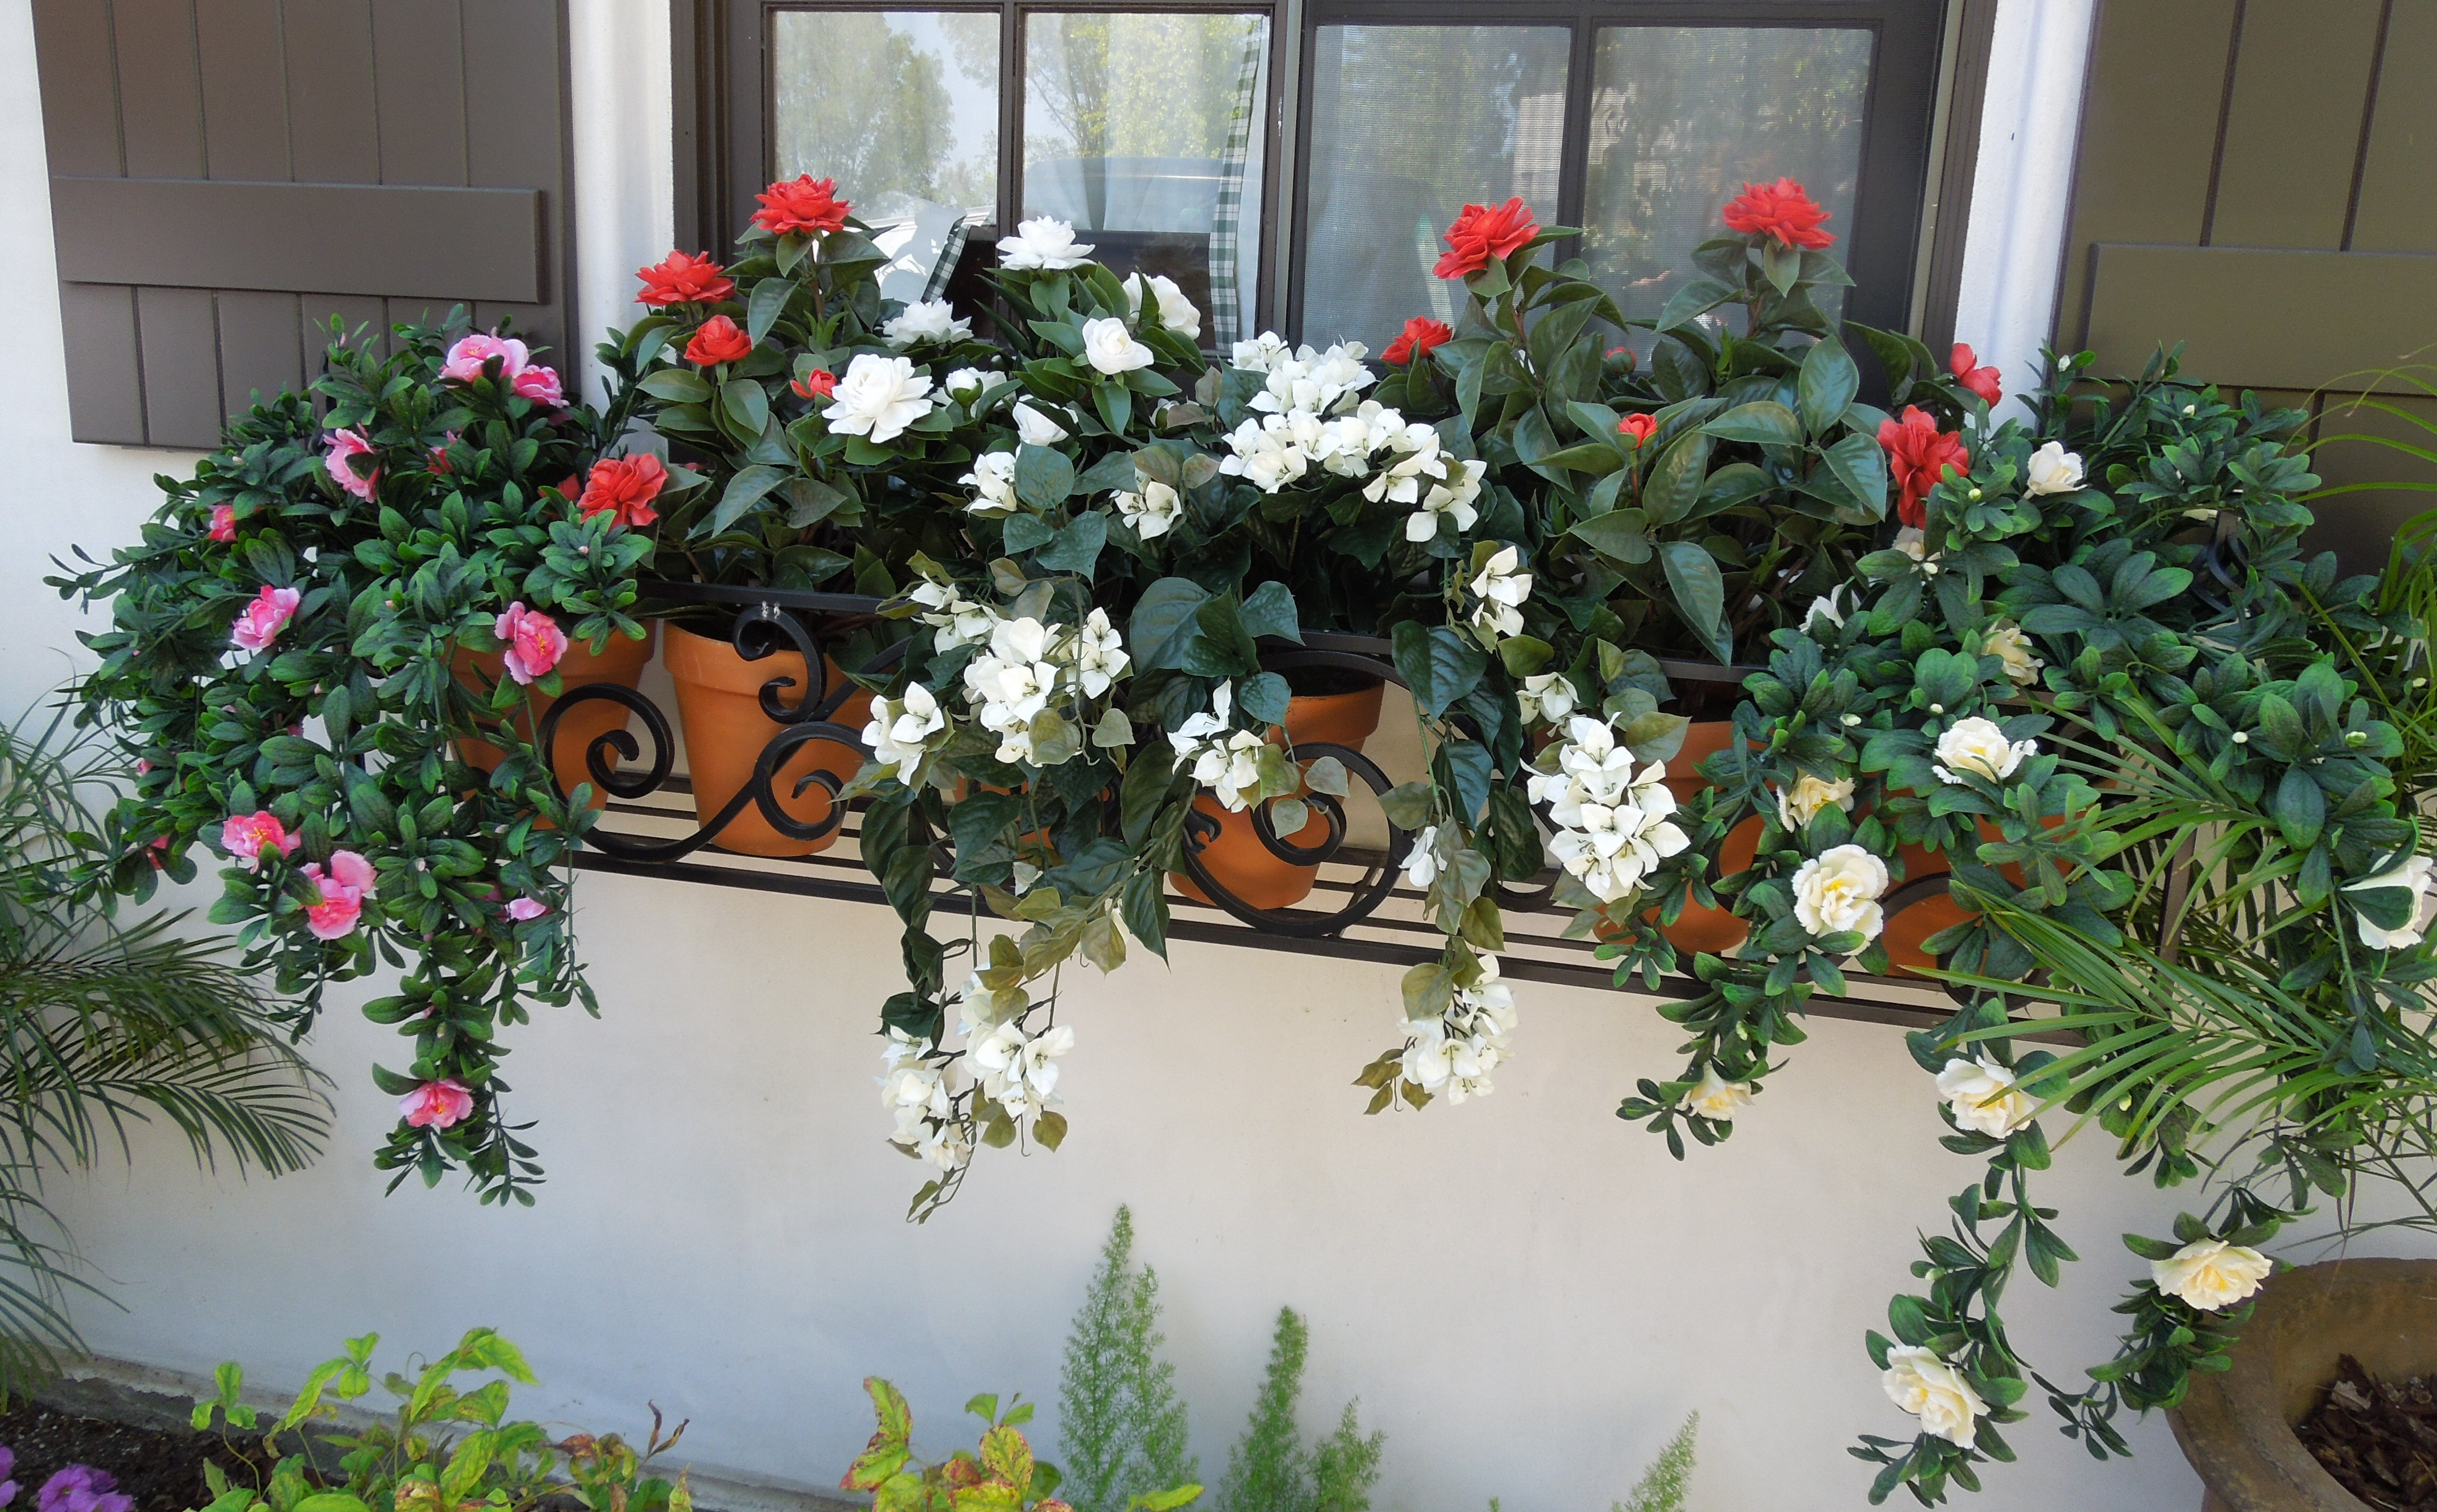 Residential flower boxes - replaced with UV mixed live flowering plants